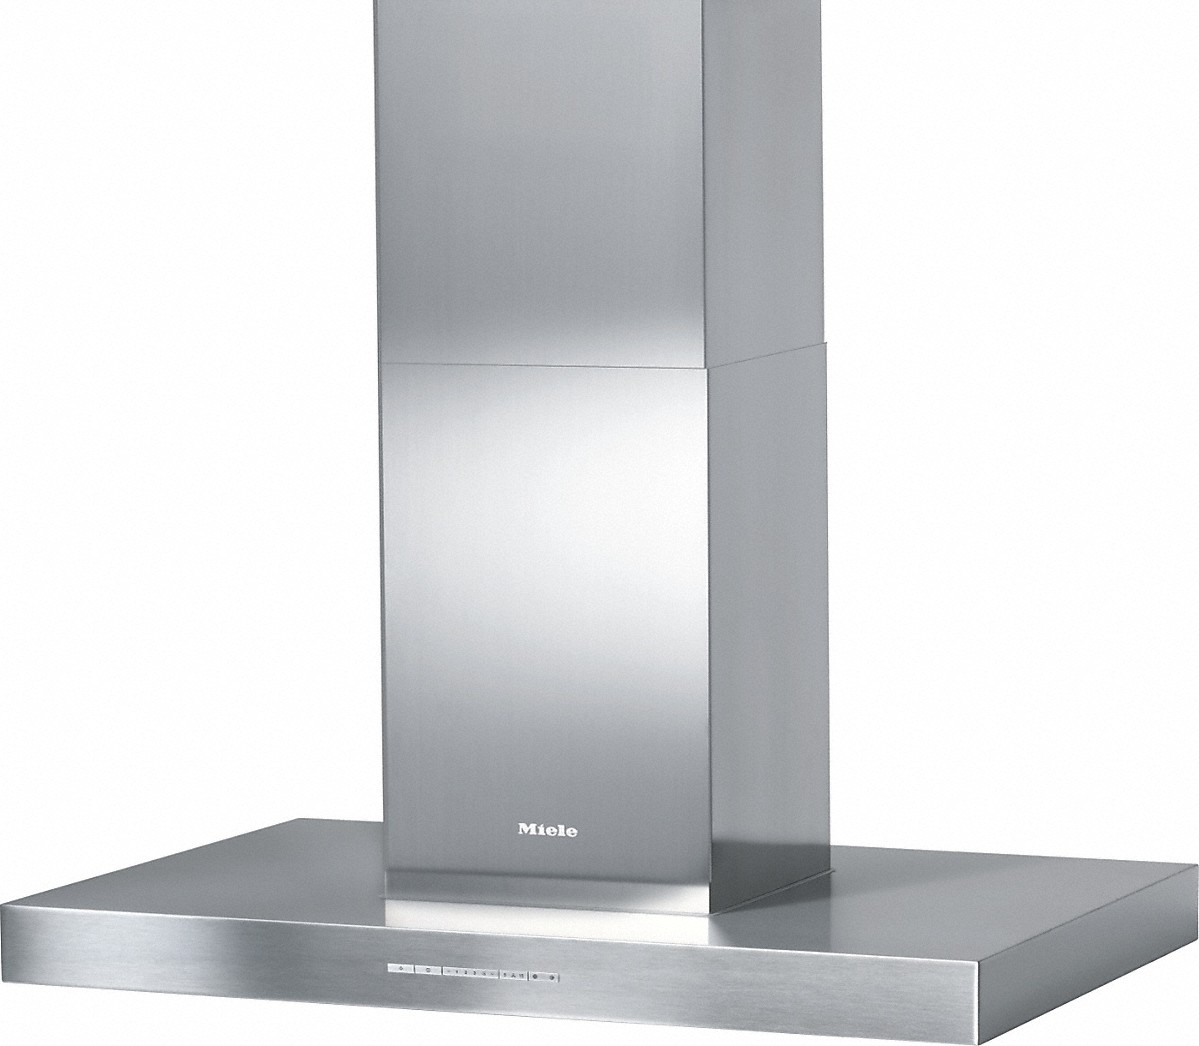 Miele Island decor hood with energy-efficient LED lighting and backlit controls for easy use.